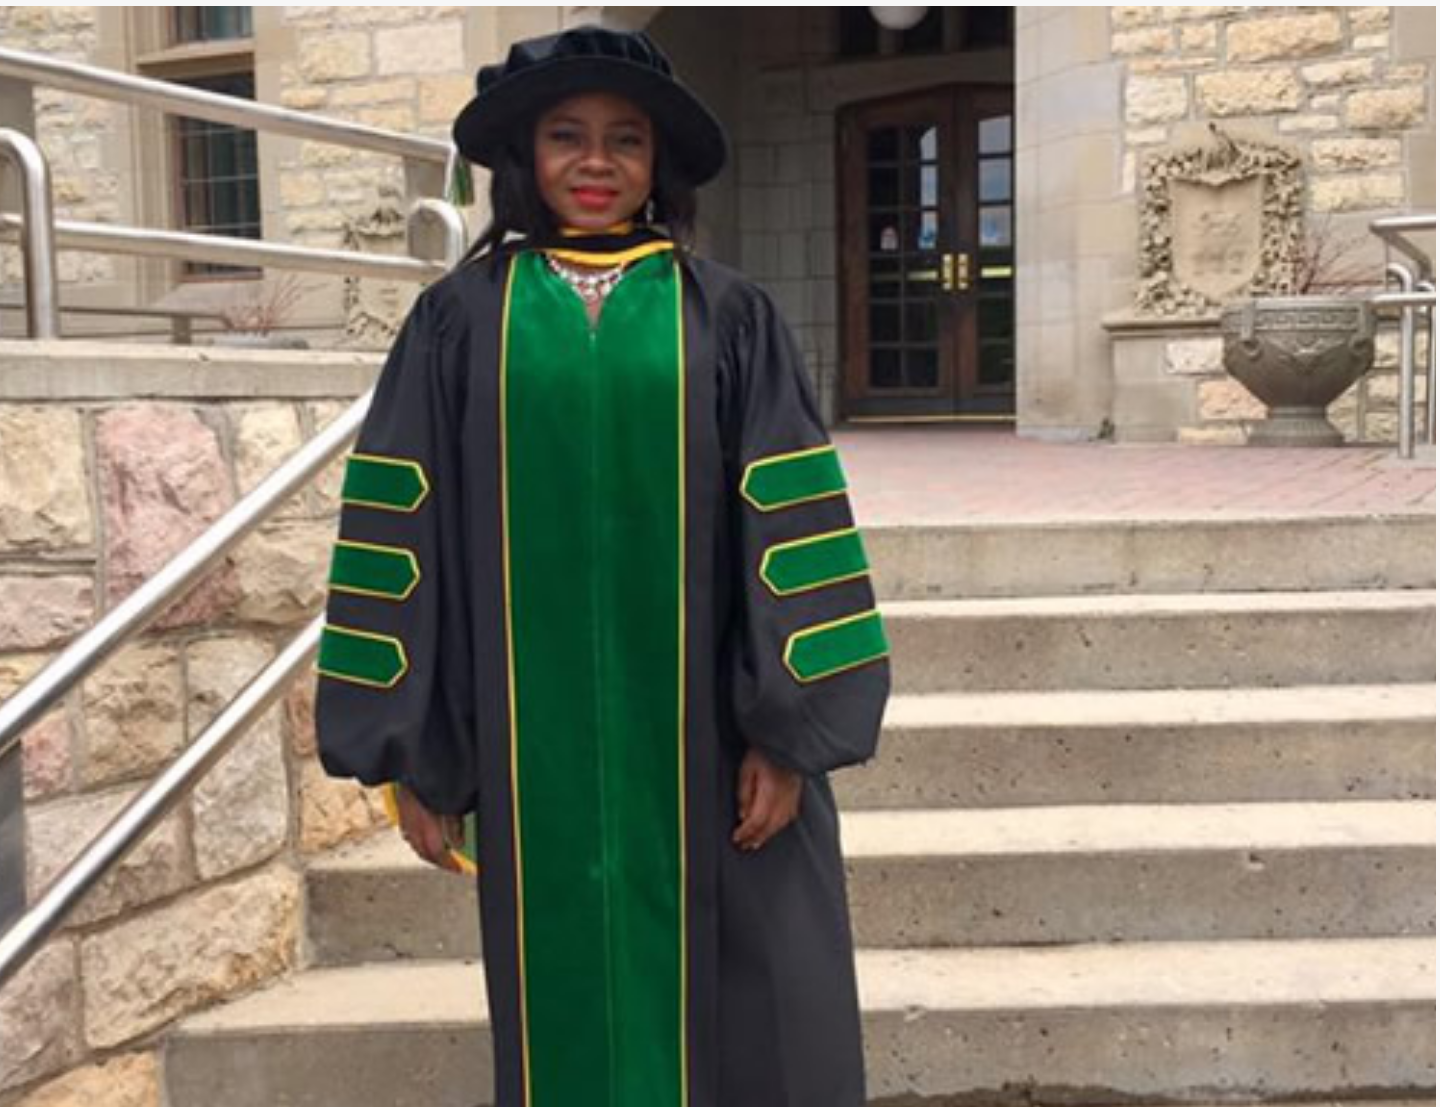 MEET ADEOLA OLUBAMIJI, FORMER PEPPER SELLER WHO IS THE FIRST BLACK WOMAN TO EARN A PHD IN BIOMEDICAL ENGINEERING FROM A CANADIAN UNIVERSITY